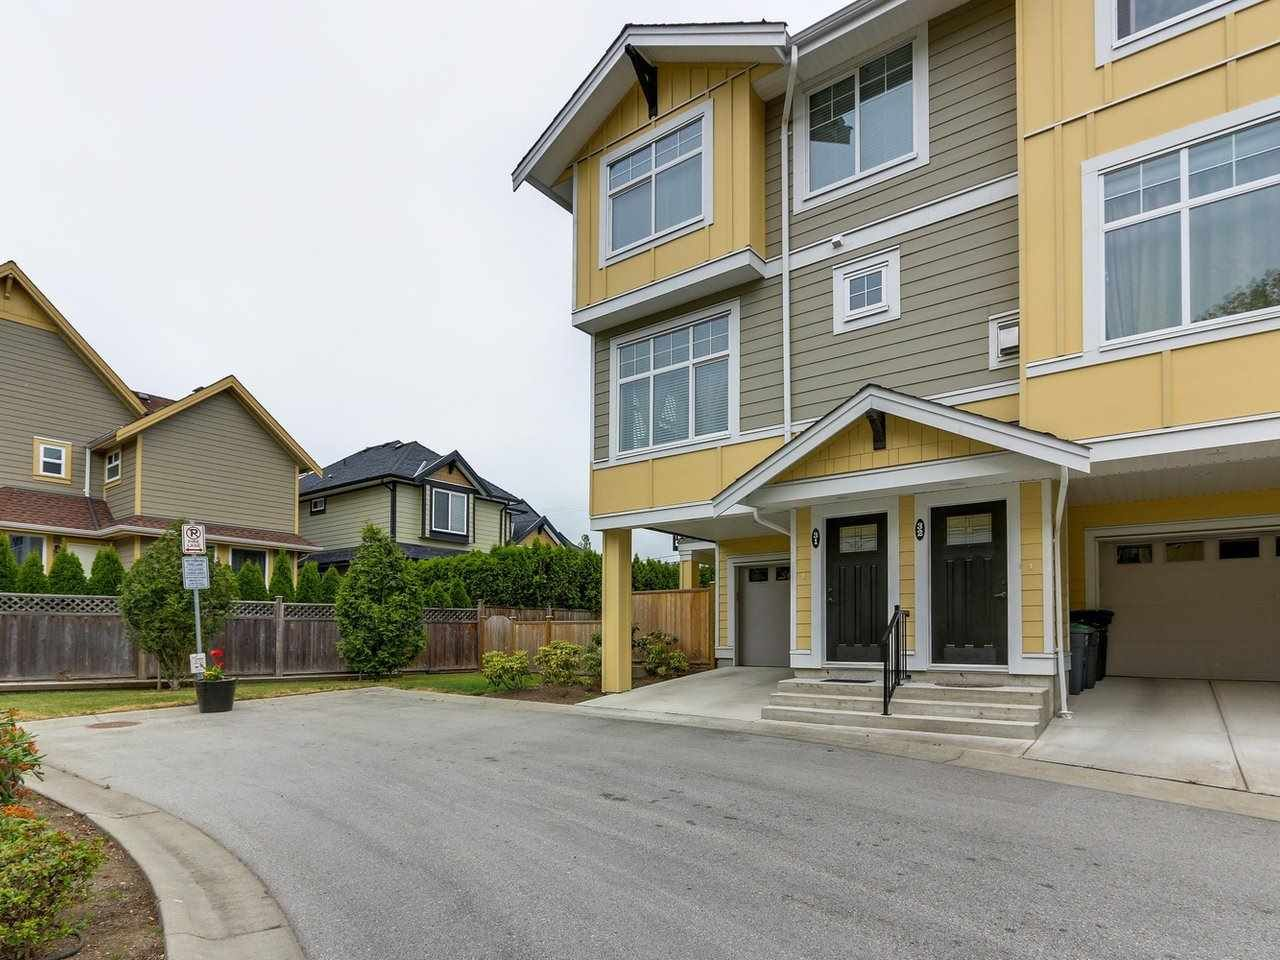 """Photo 18: Photos: 31 17171 2B Avenue in Surrey: Pacific Douglas Townhouse for sale in """"AUGUSTA TOWNHOUSES"""" (South Surrey White Rock)  : MLS®# R2280398"""